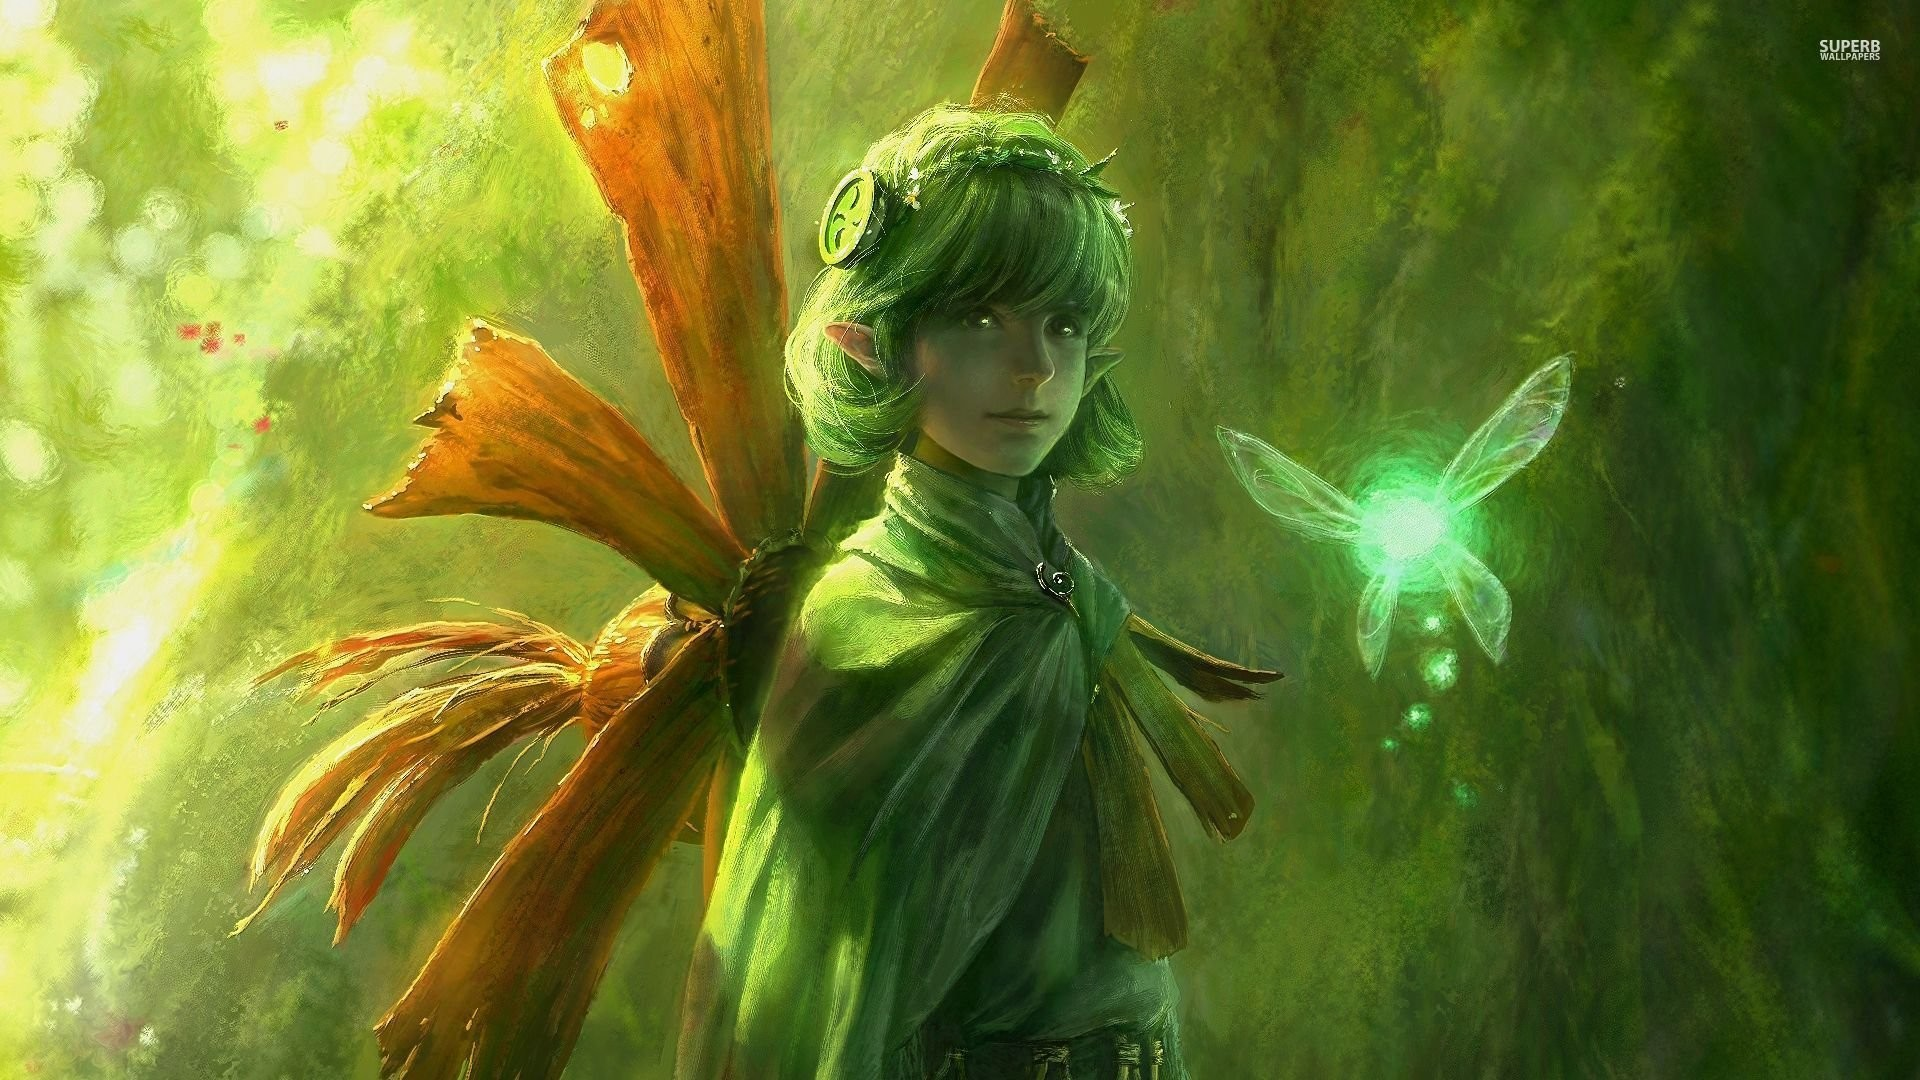 The Legend Of Zelda Ocarina Of Time Wallpapers Group HD